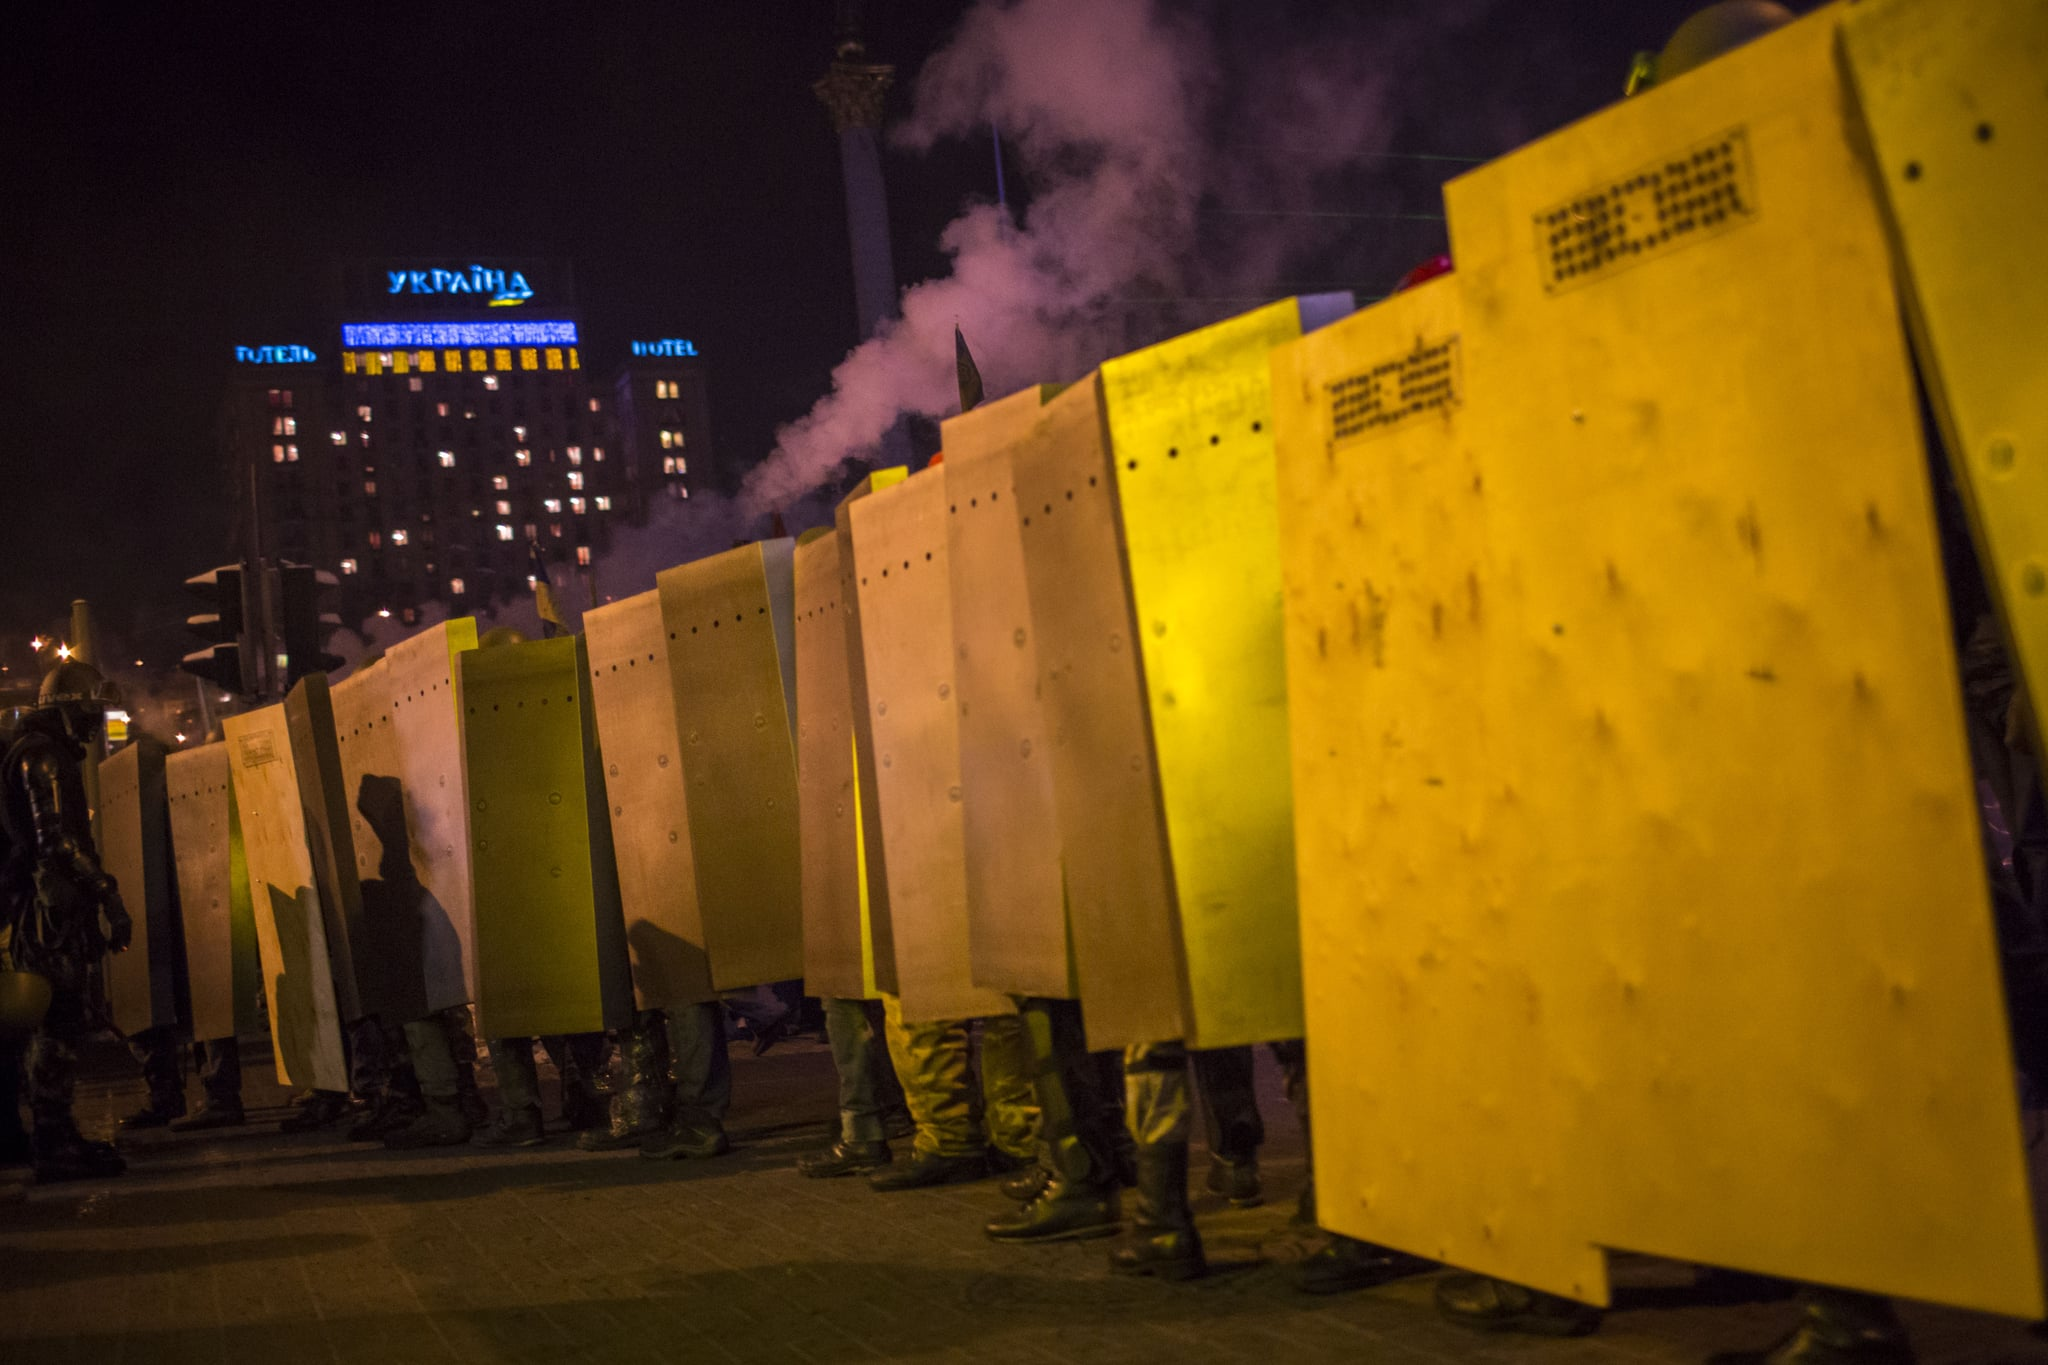 Protesters carried metal shields to march through Kiev.